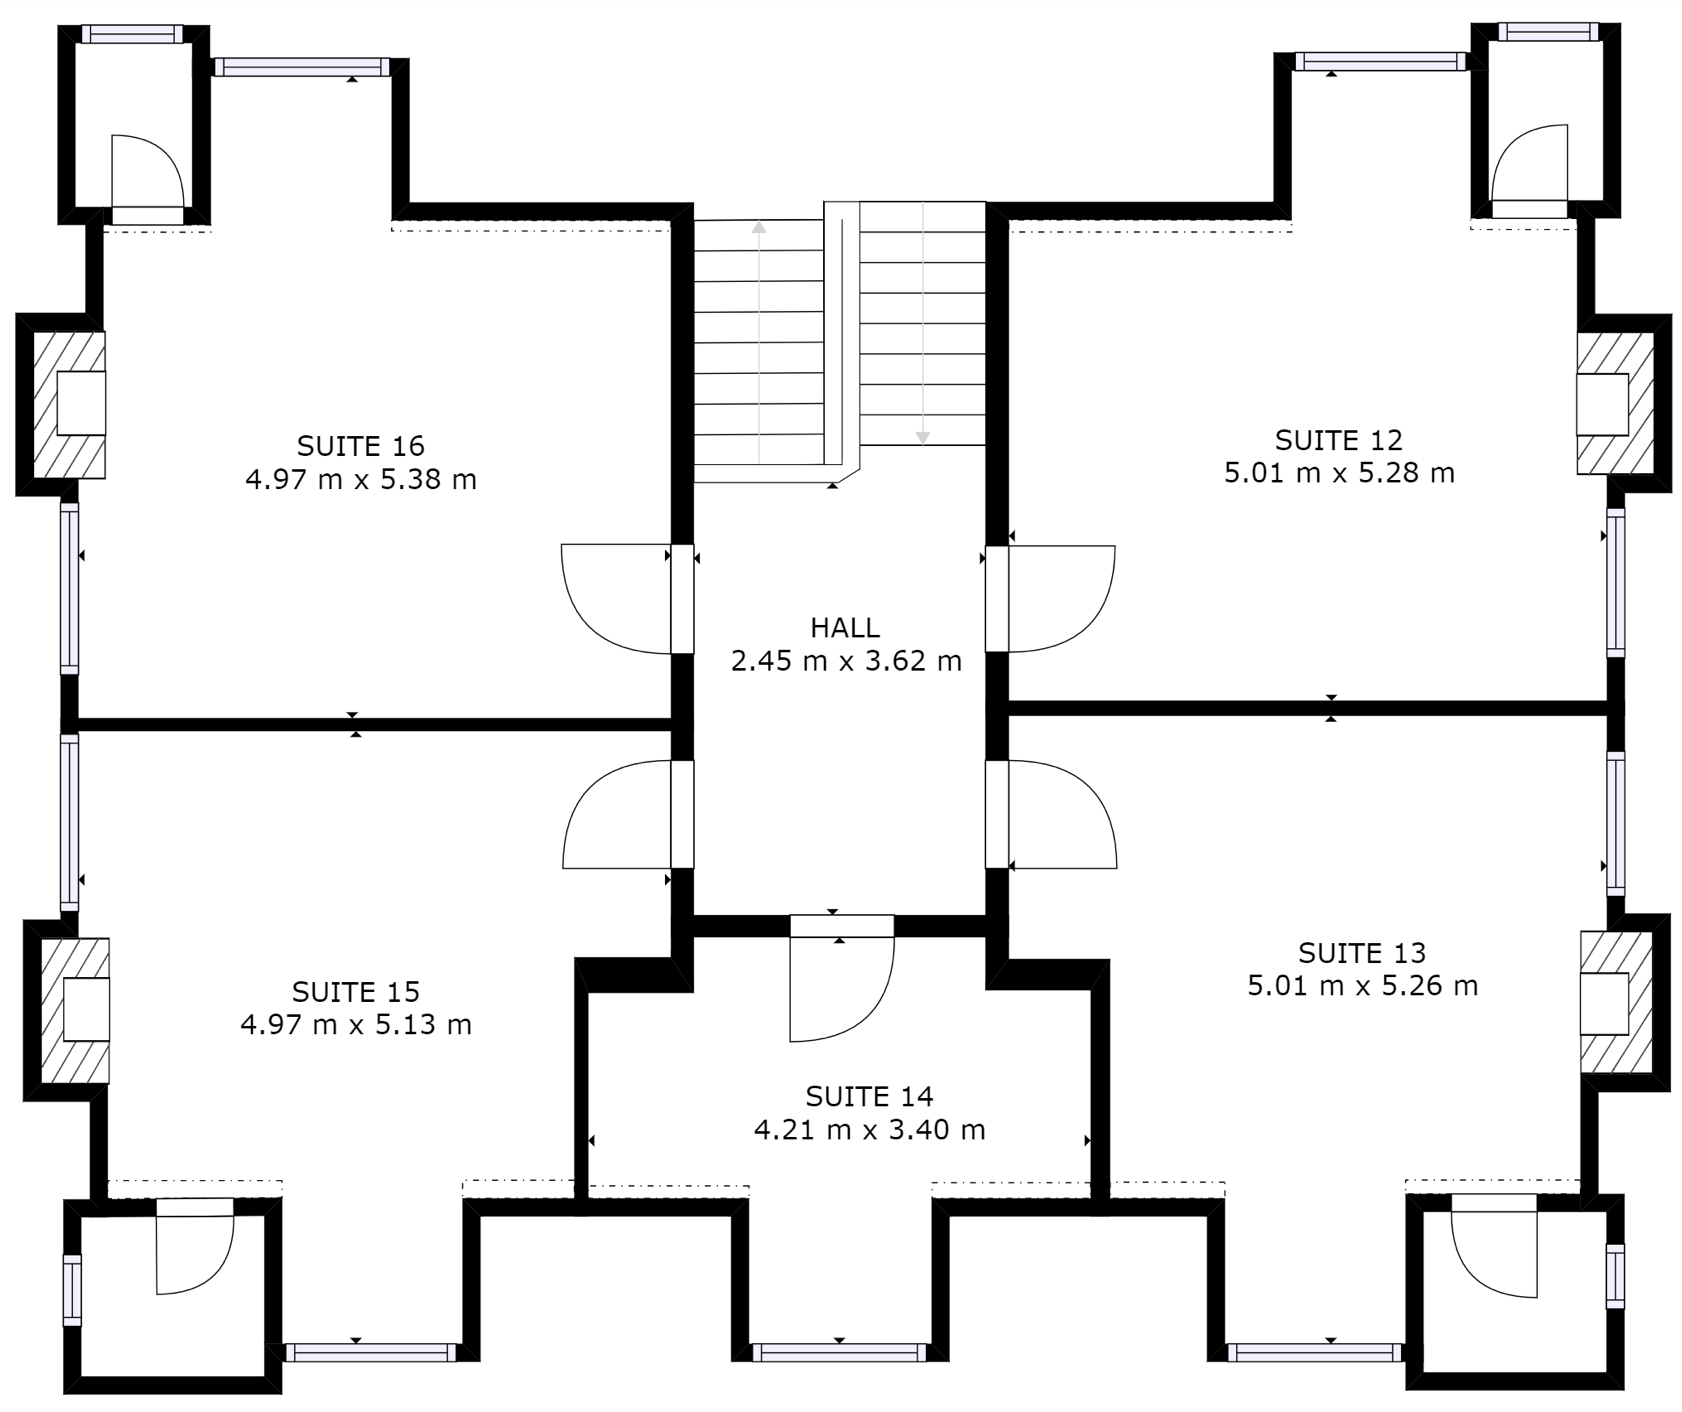 Second Floor Layout of Markham House. Floor plan of private office suite for rent in Wokingham.